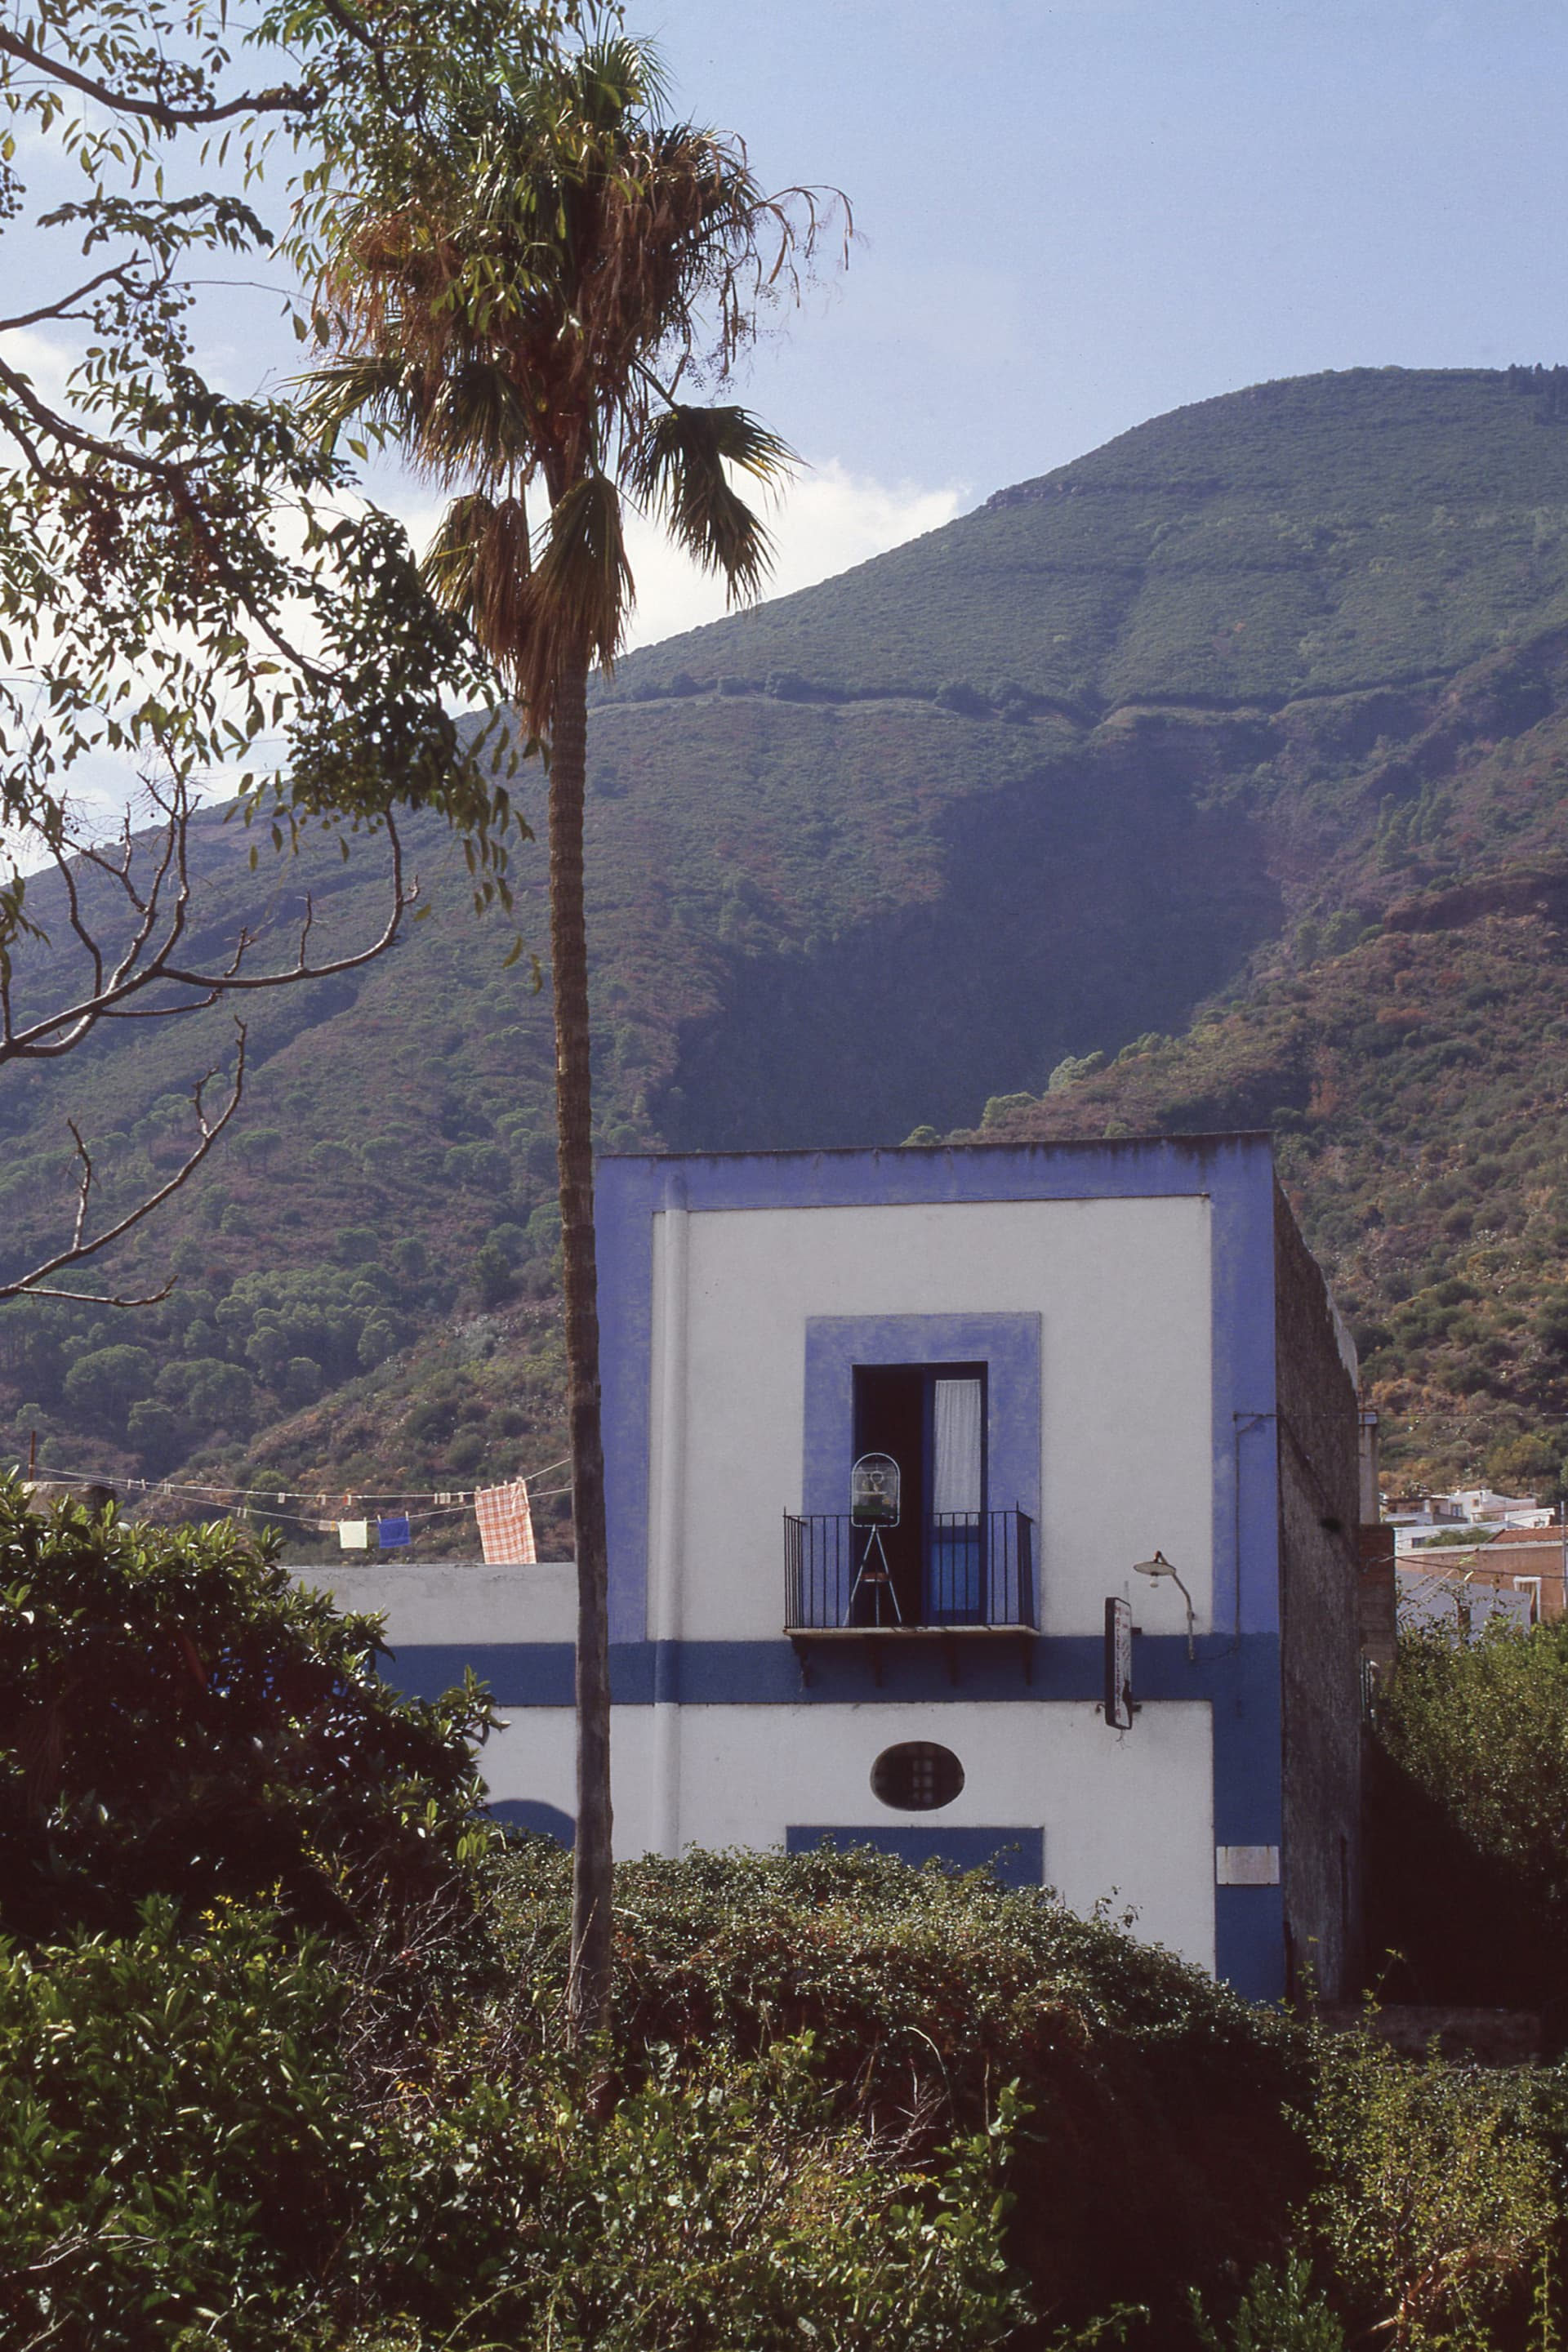 An Aeolian house in Santa Marina di Salina with the typical blue decoration on the walls.